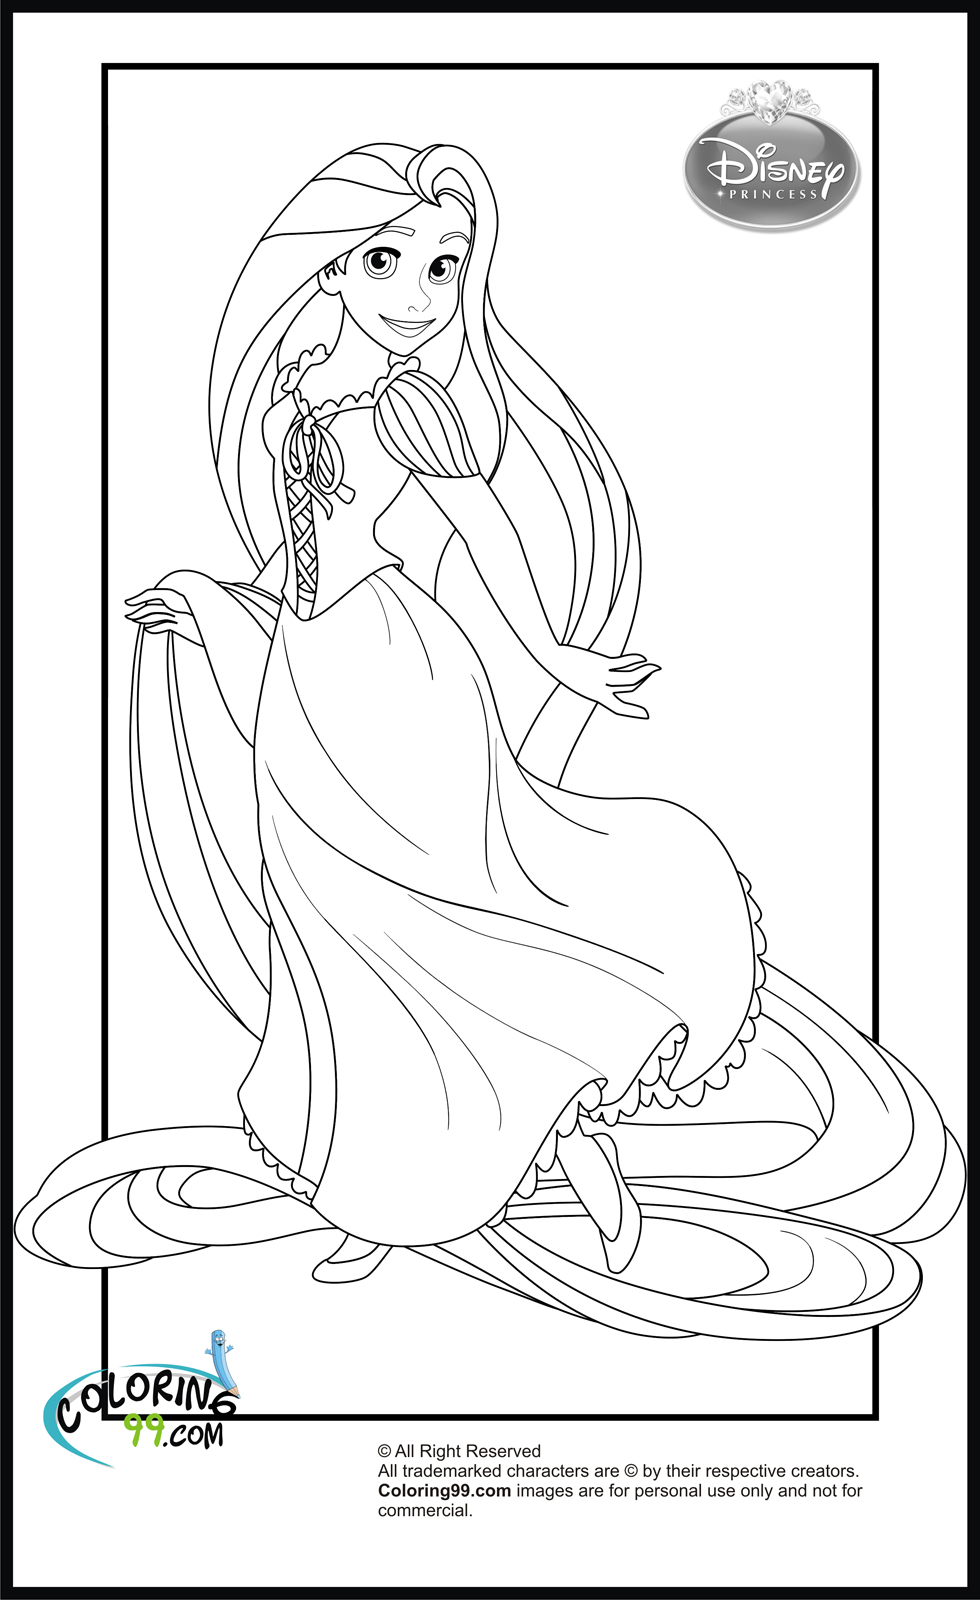 Disney princess coloring pages team colors for Disney princess rapunzel coloring pages